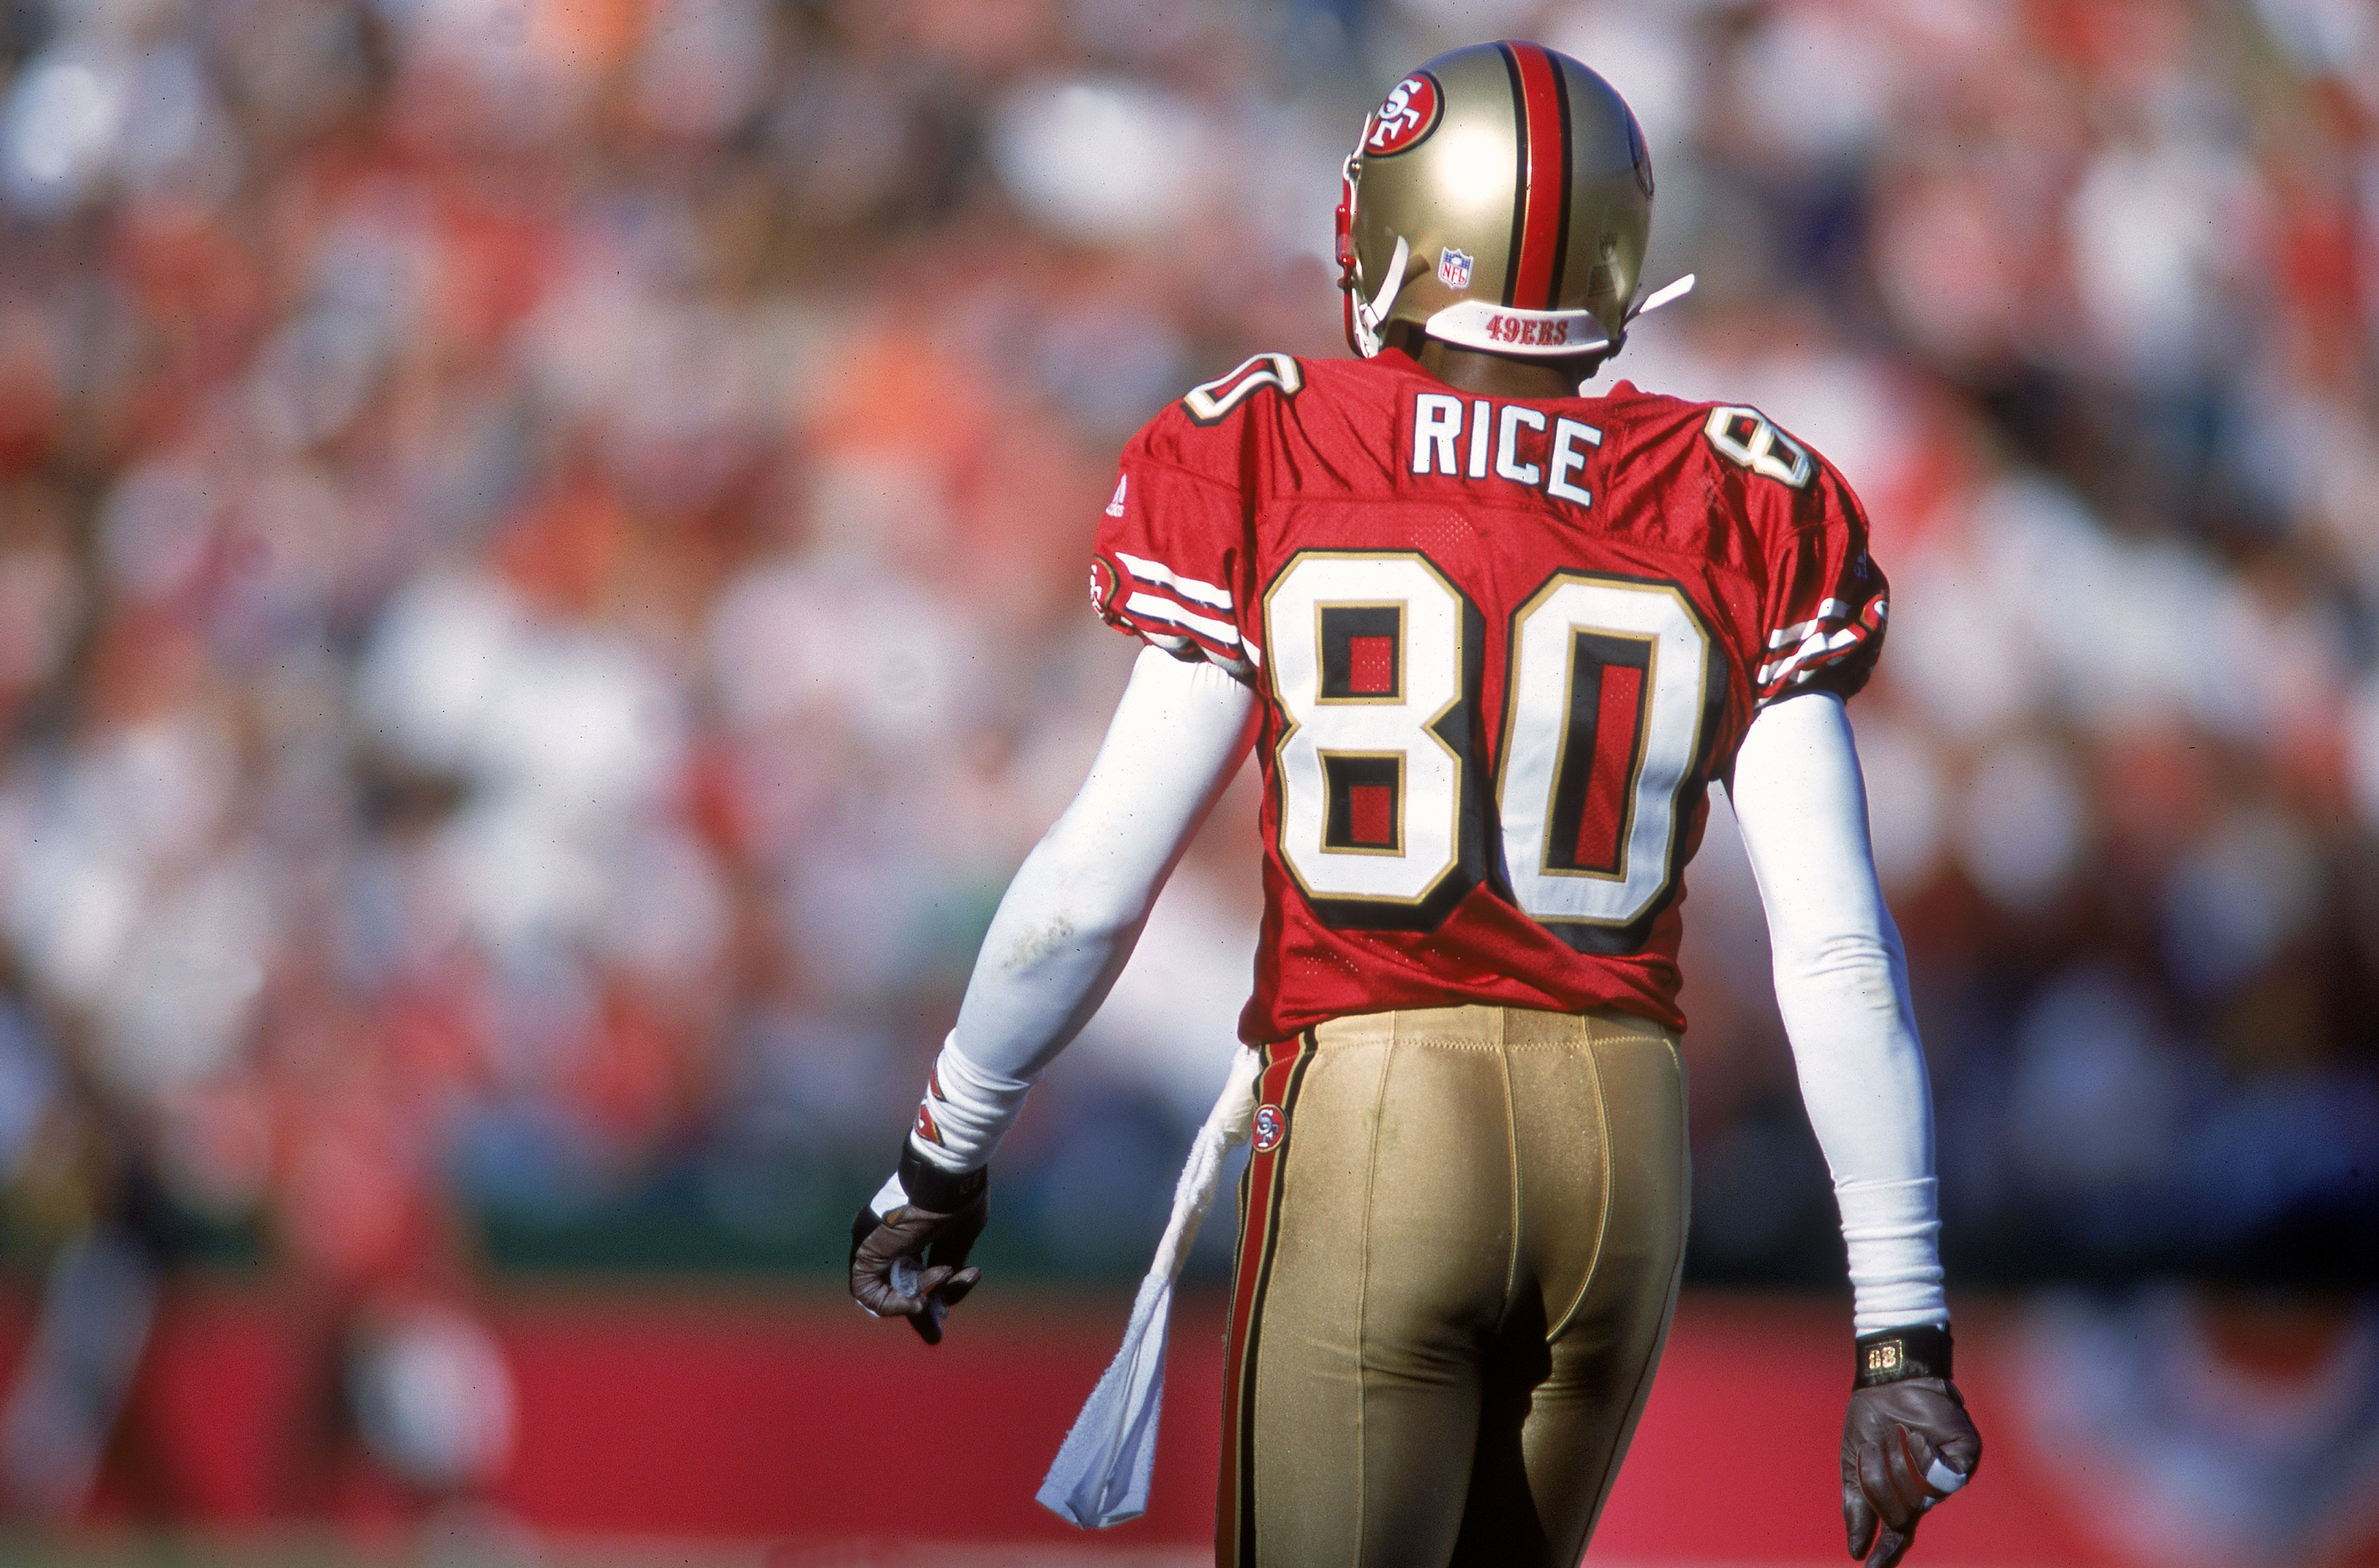 0641b9e9e4d 17 Dec 2000: Jerry Rice #80 of the San Francisco 49ers walks off the